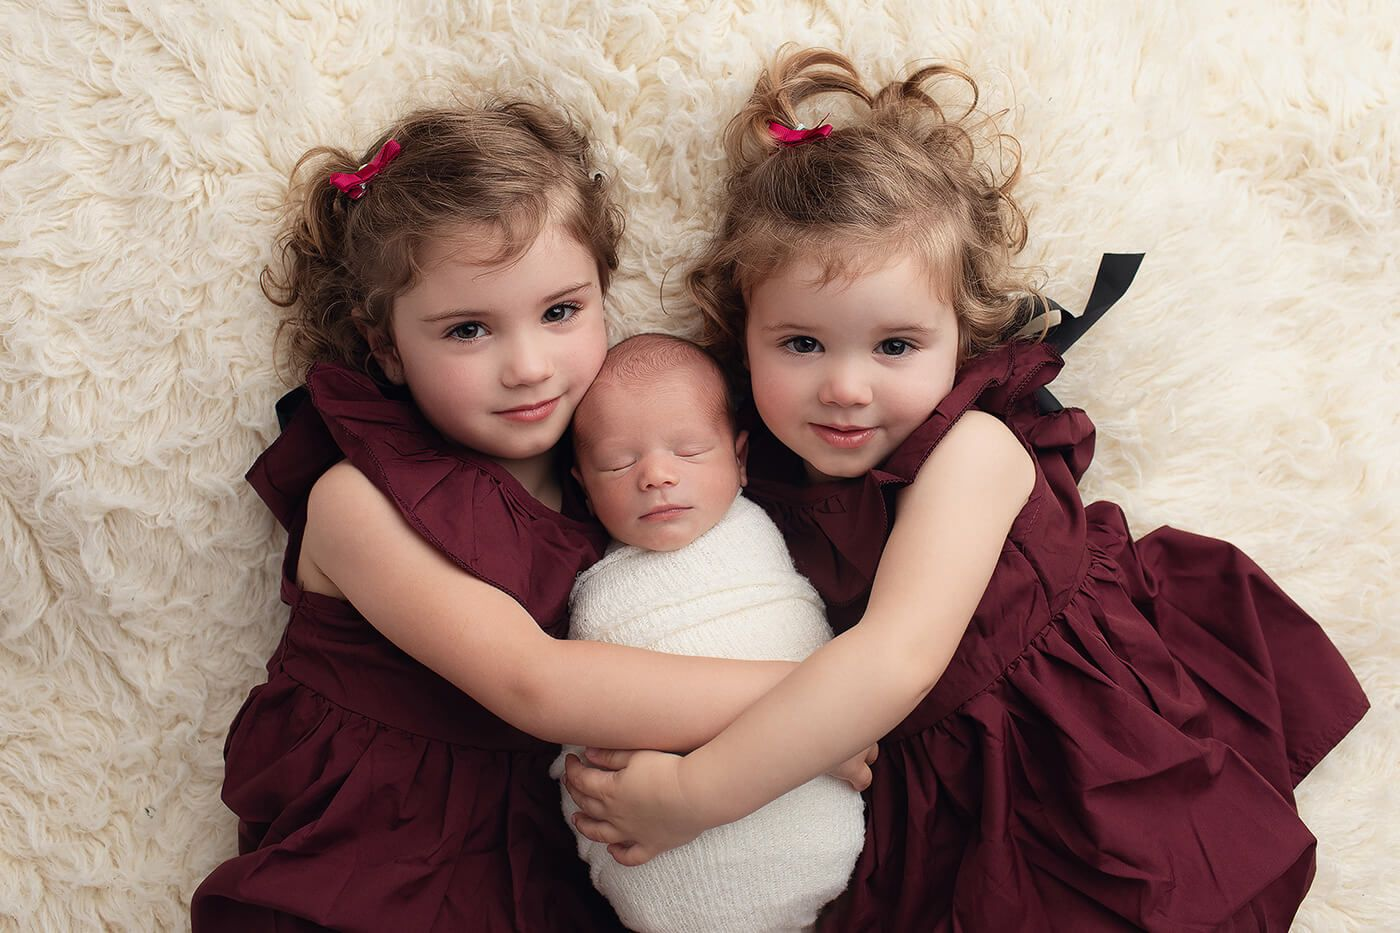 A newborn baby boy is wrapped up and lying with his two sisters having photos taken at a newborn photo studio in Perth